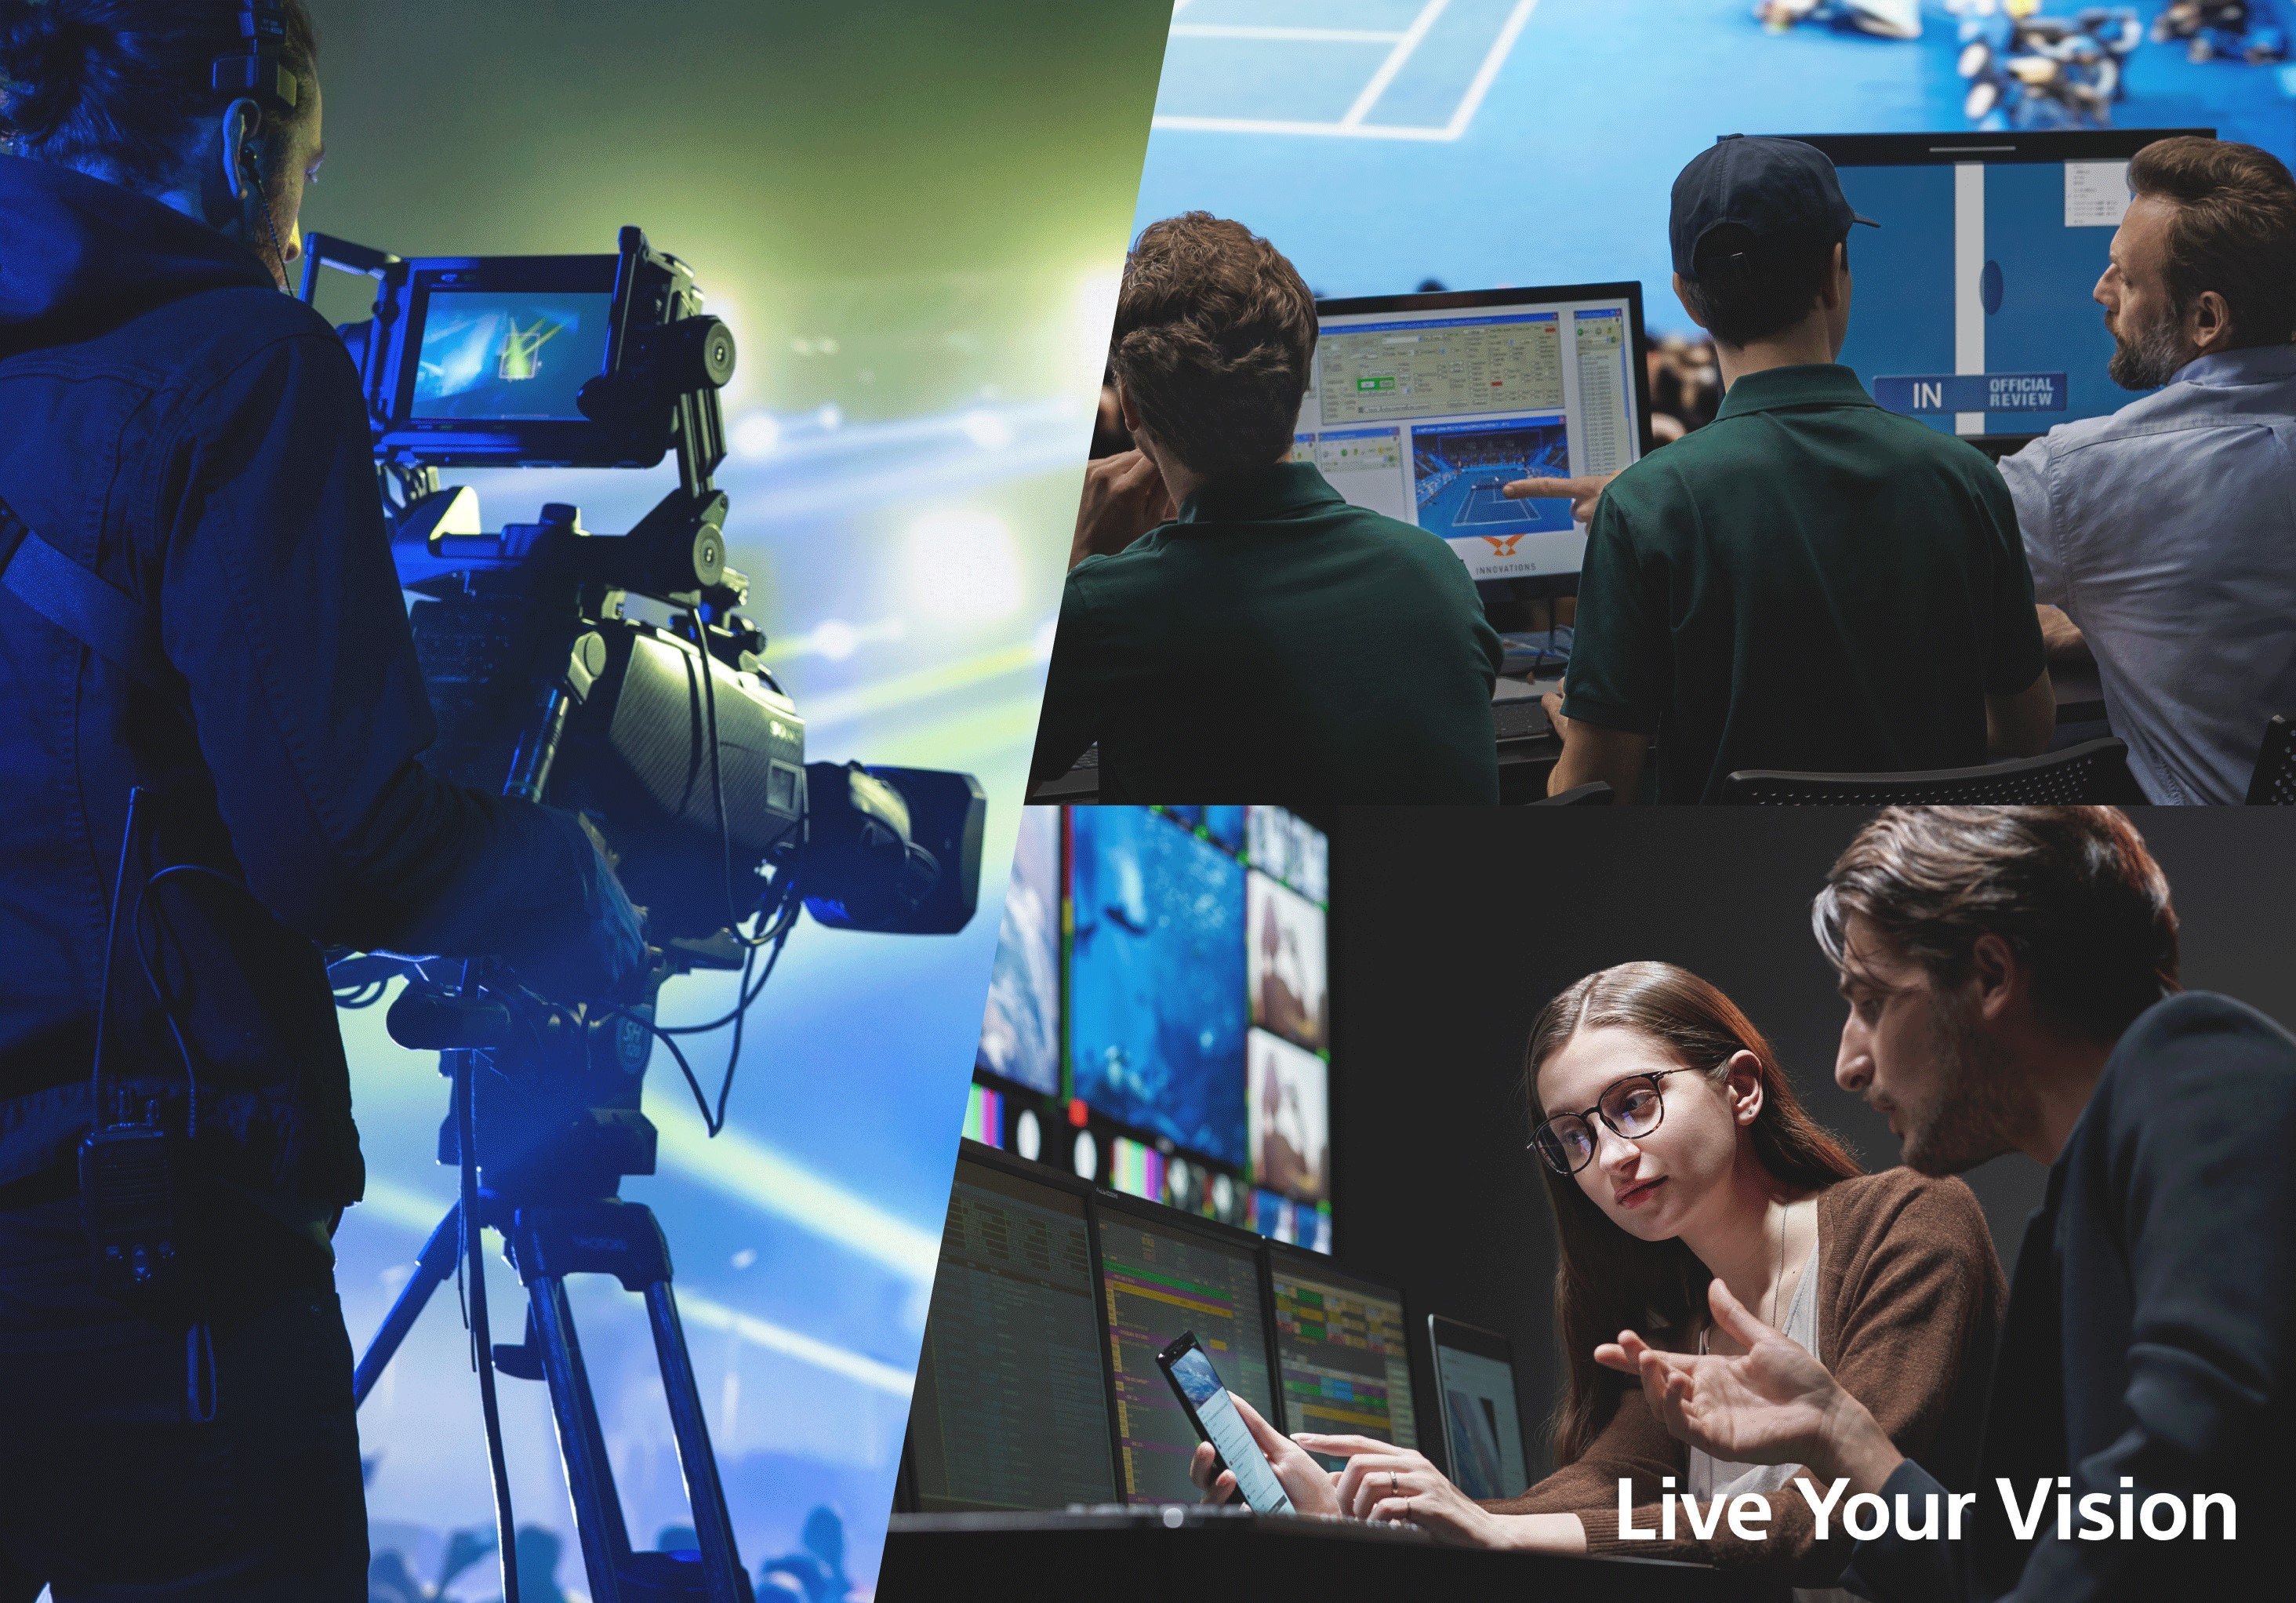 Sony Announces Latest IP, Cloud Solutions and Imaging Products for More Flexible and Scalable Productions and Workflows